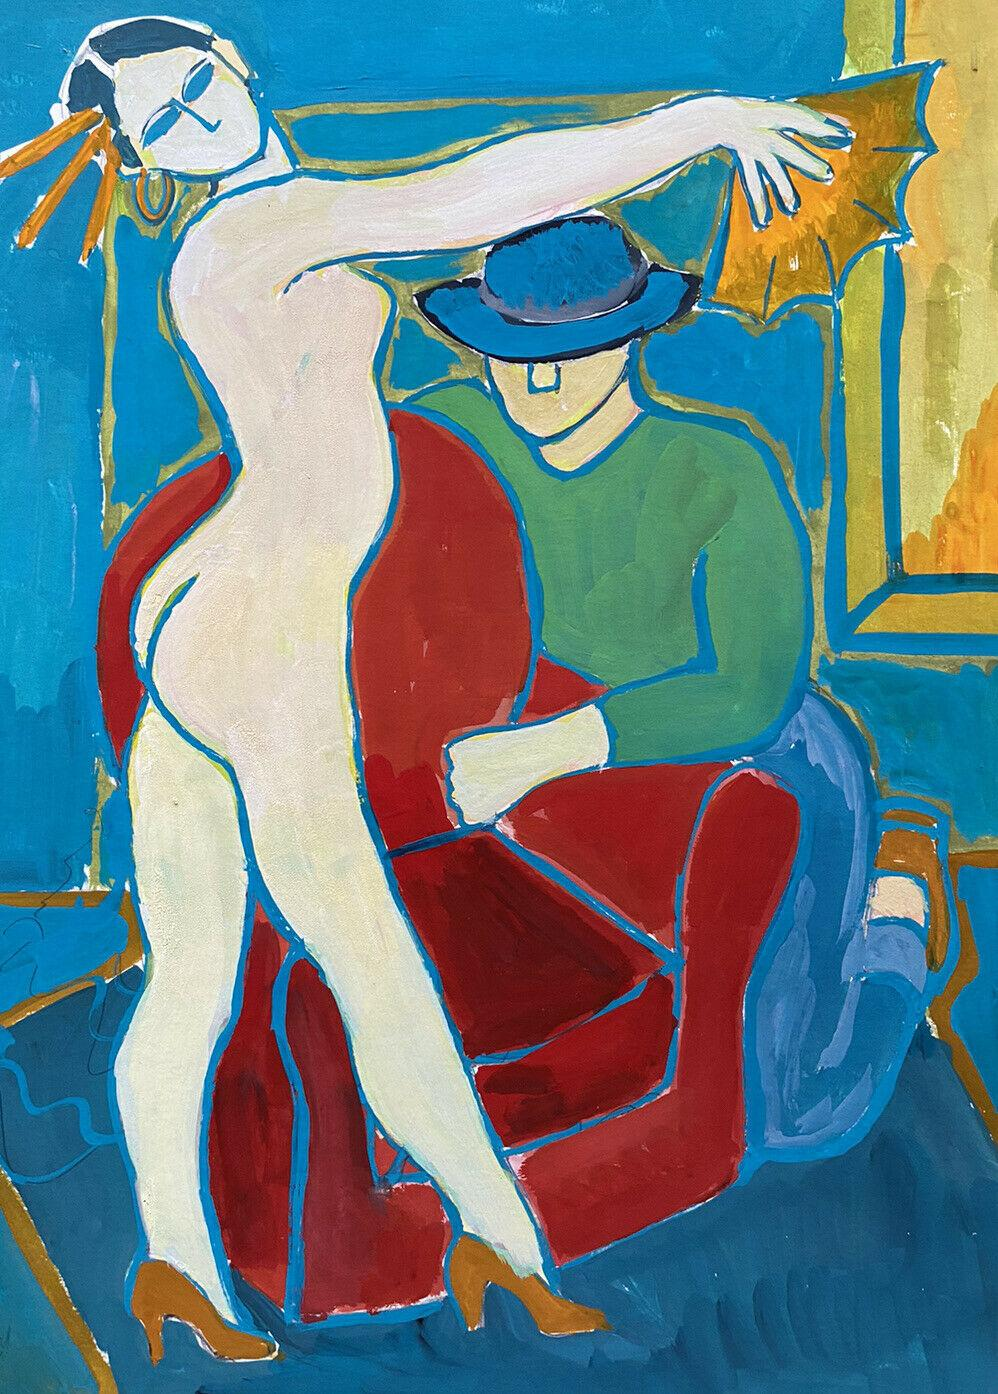 SUPERB 20th CENTURY FRENCH MODERNIST PAINTING - NUDE MODEL IN INTERIOR ROOM